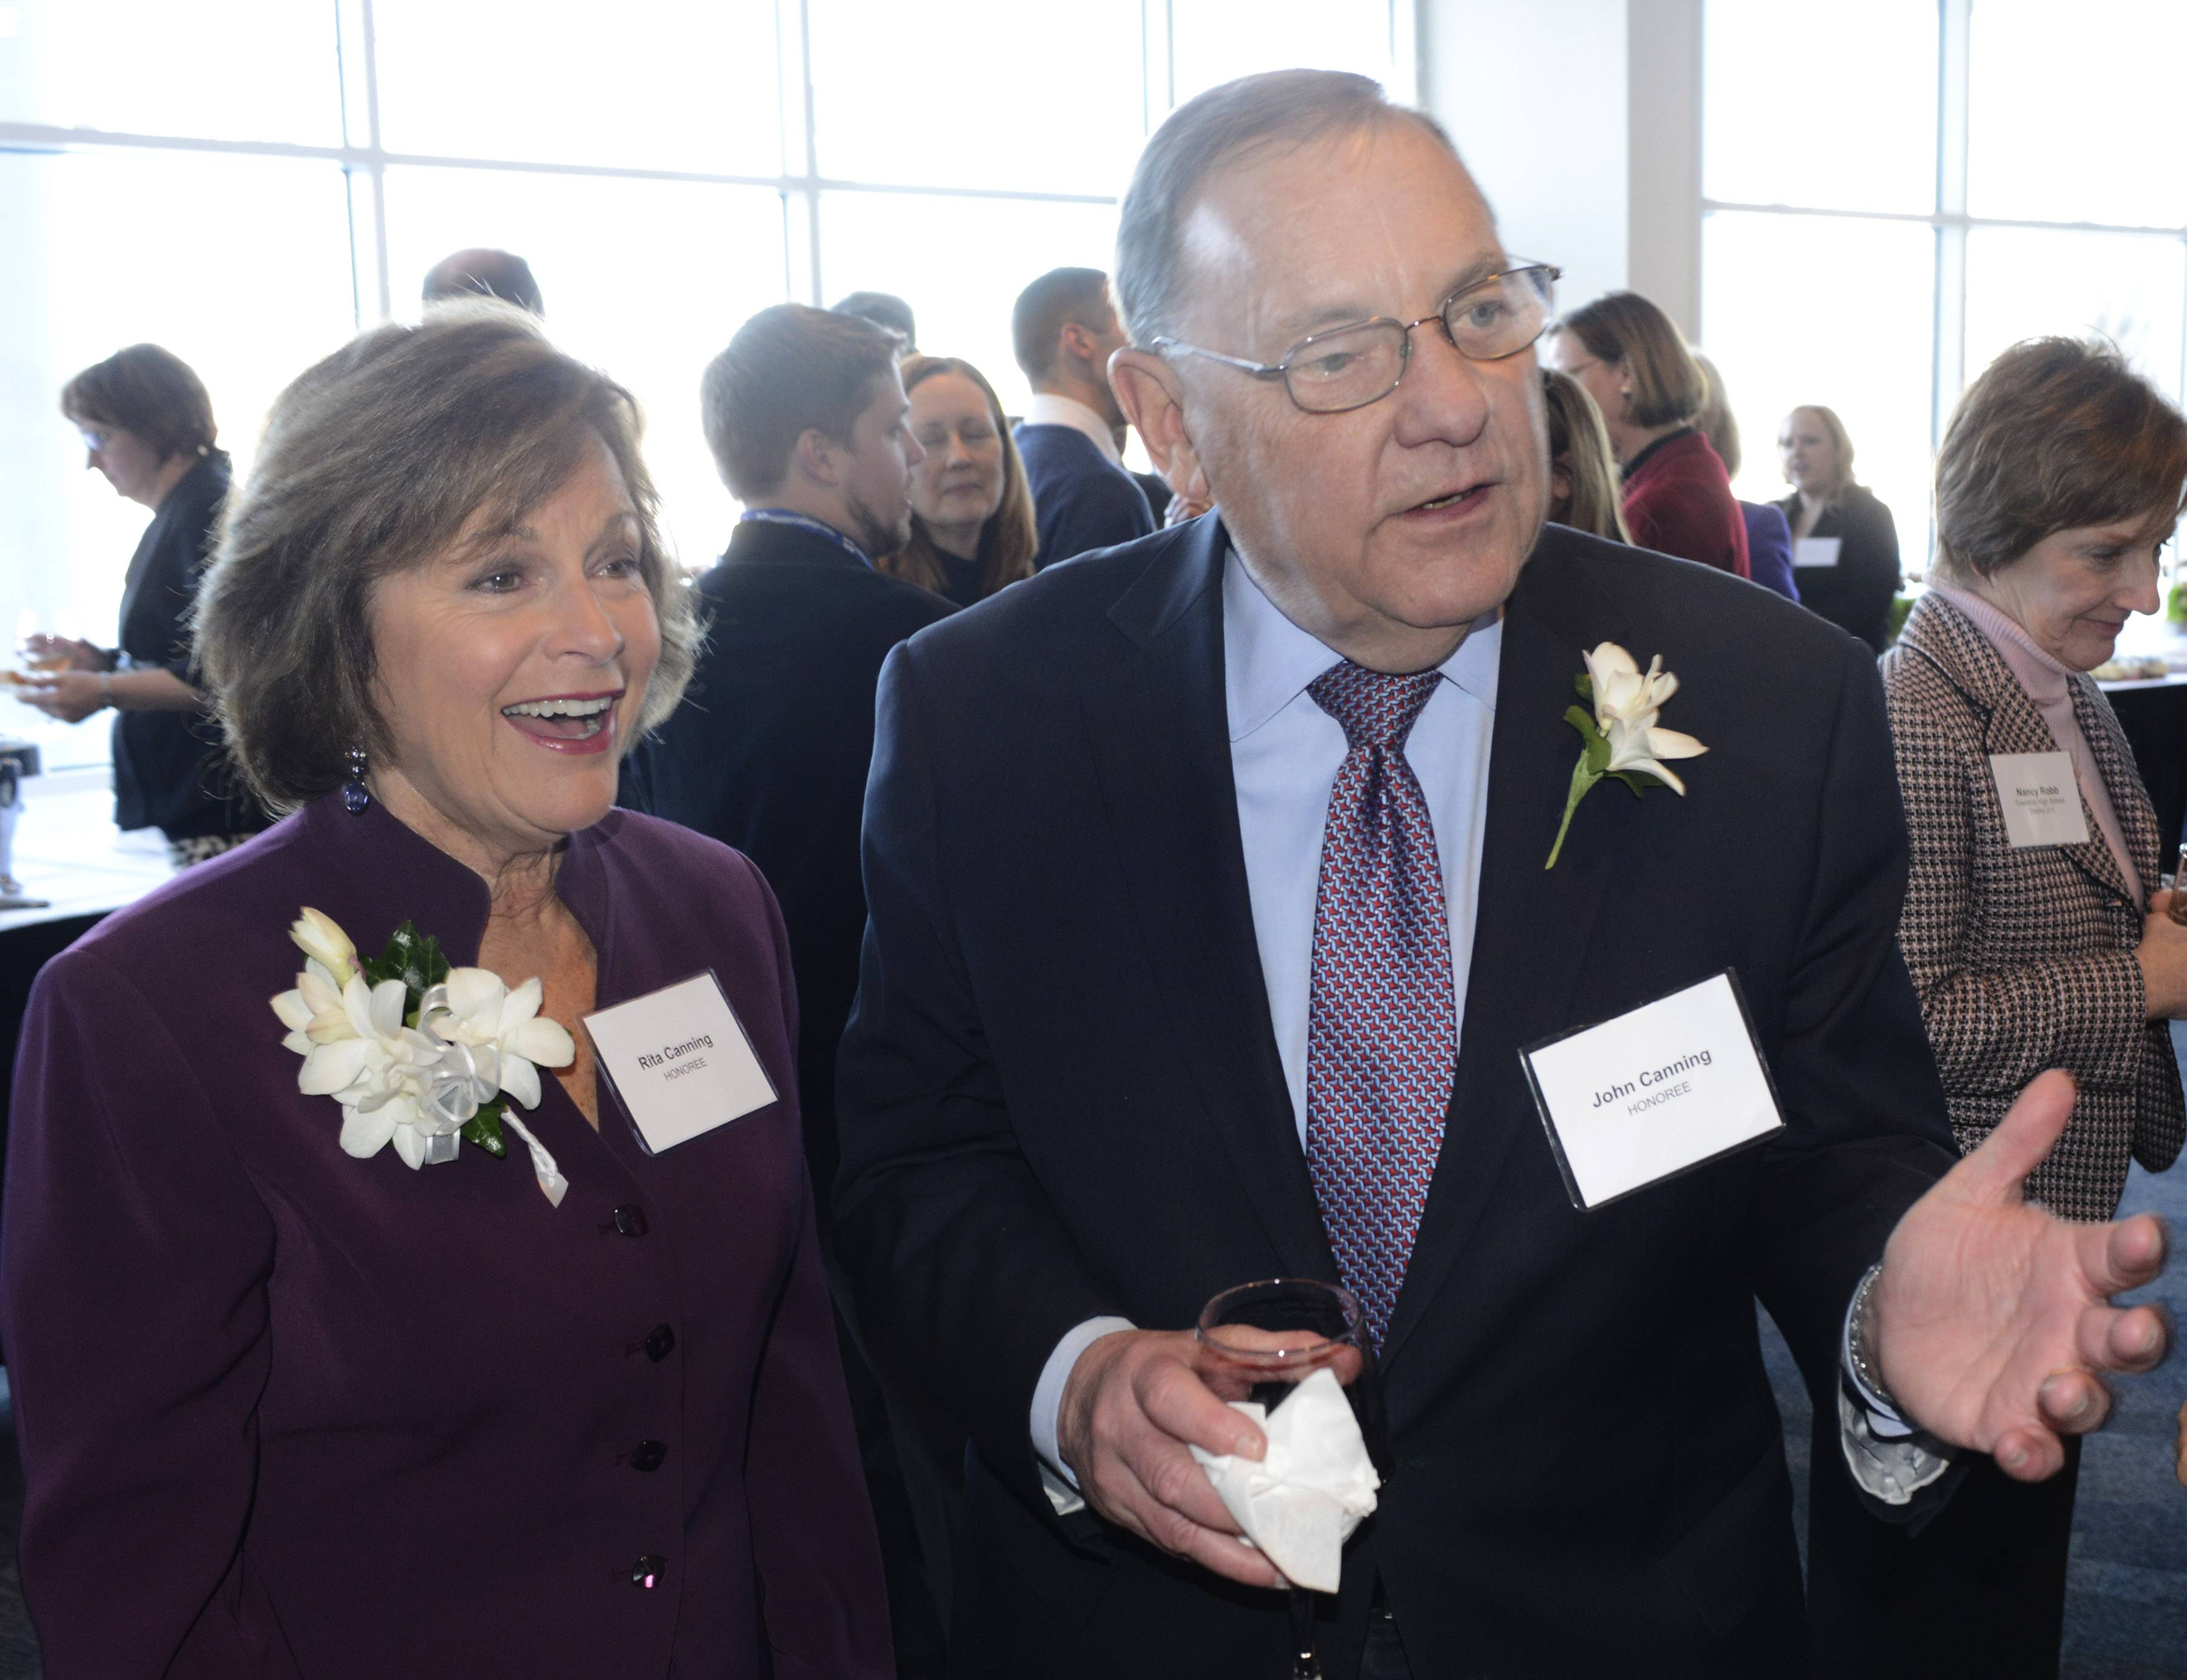 "Rita and John Canning of Inverness greet guests during a reception before the announcement of the couple's $1 million gift to Harper College in Palatine. The gift will benefit the Rita and John Canning women's Program., which"" provides educational support, resources and the opportunity for a fresh start for single parents, displaced homemakers and others, many of whom are survivors of domestic violence,"" according to a Harper College news release."